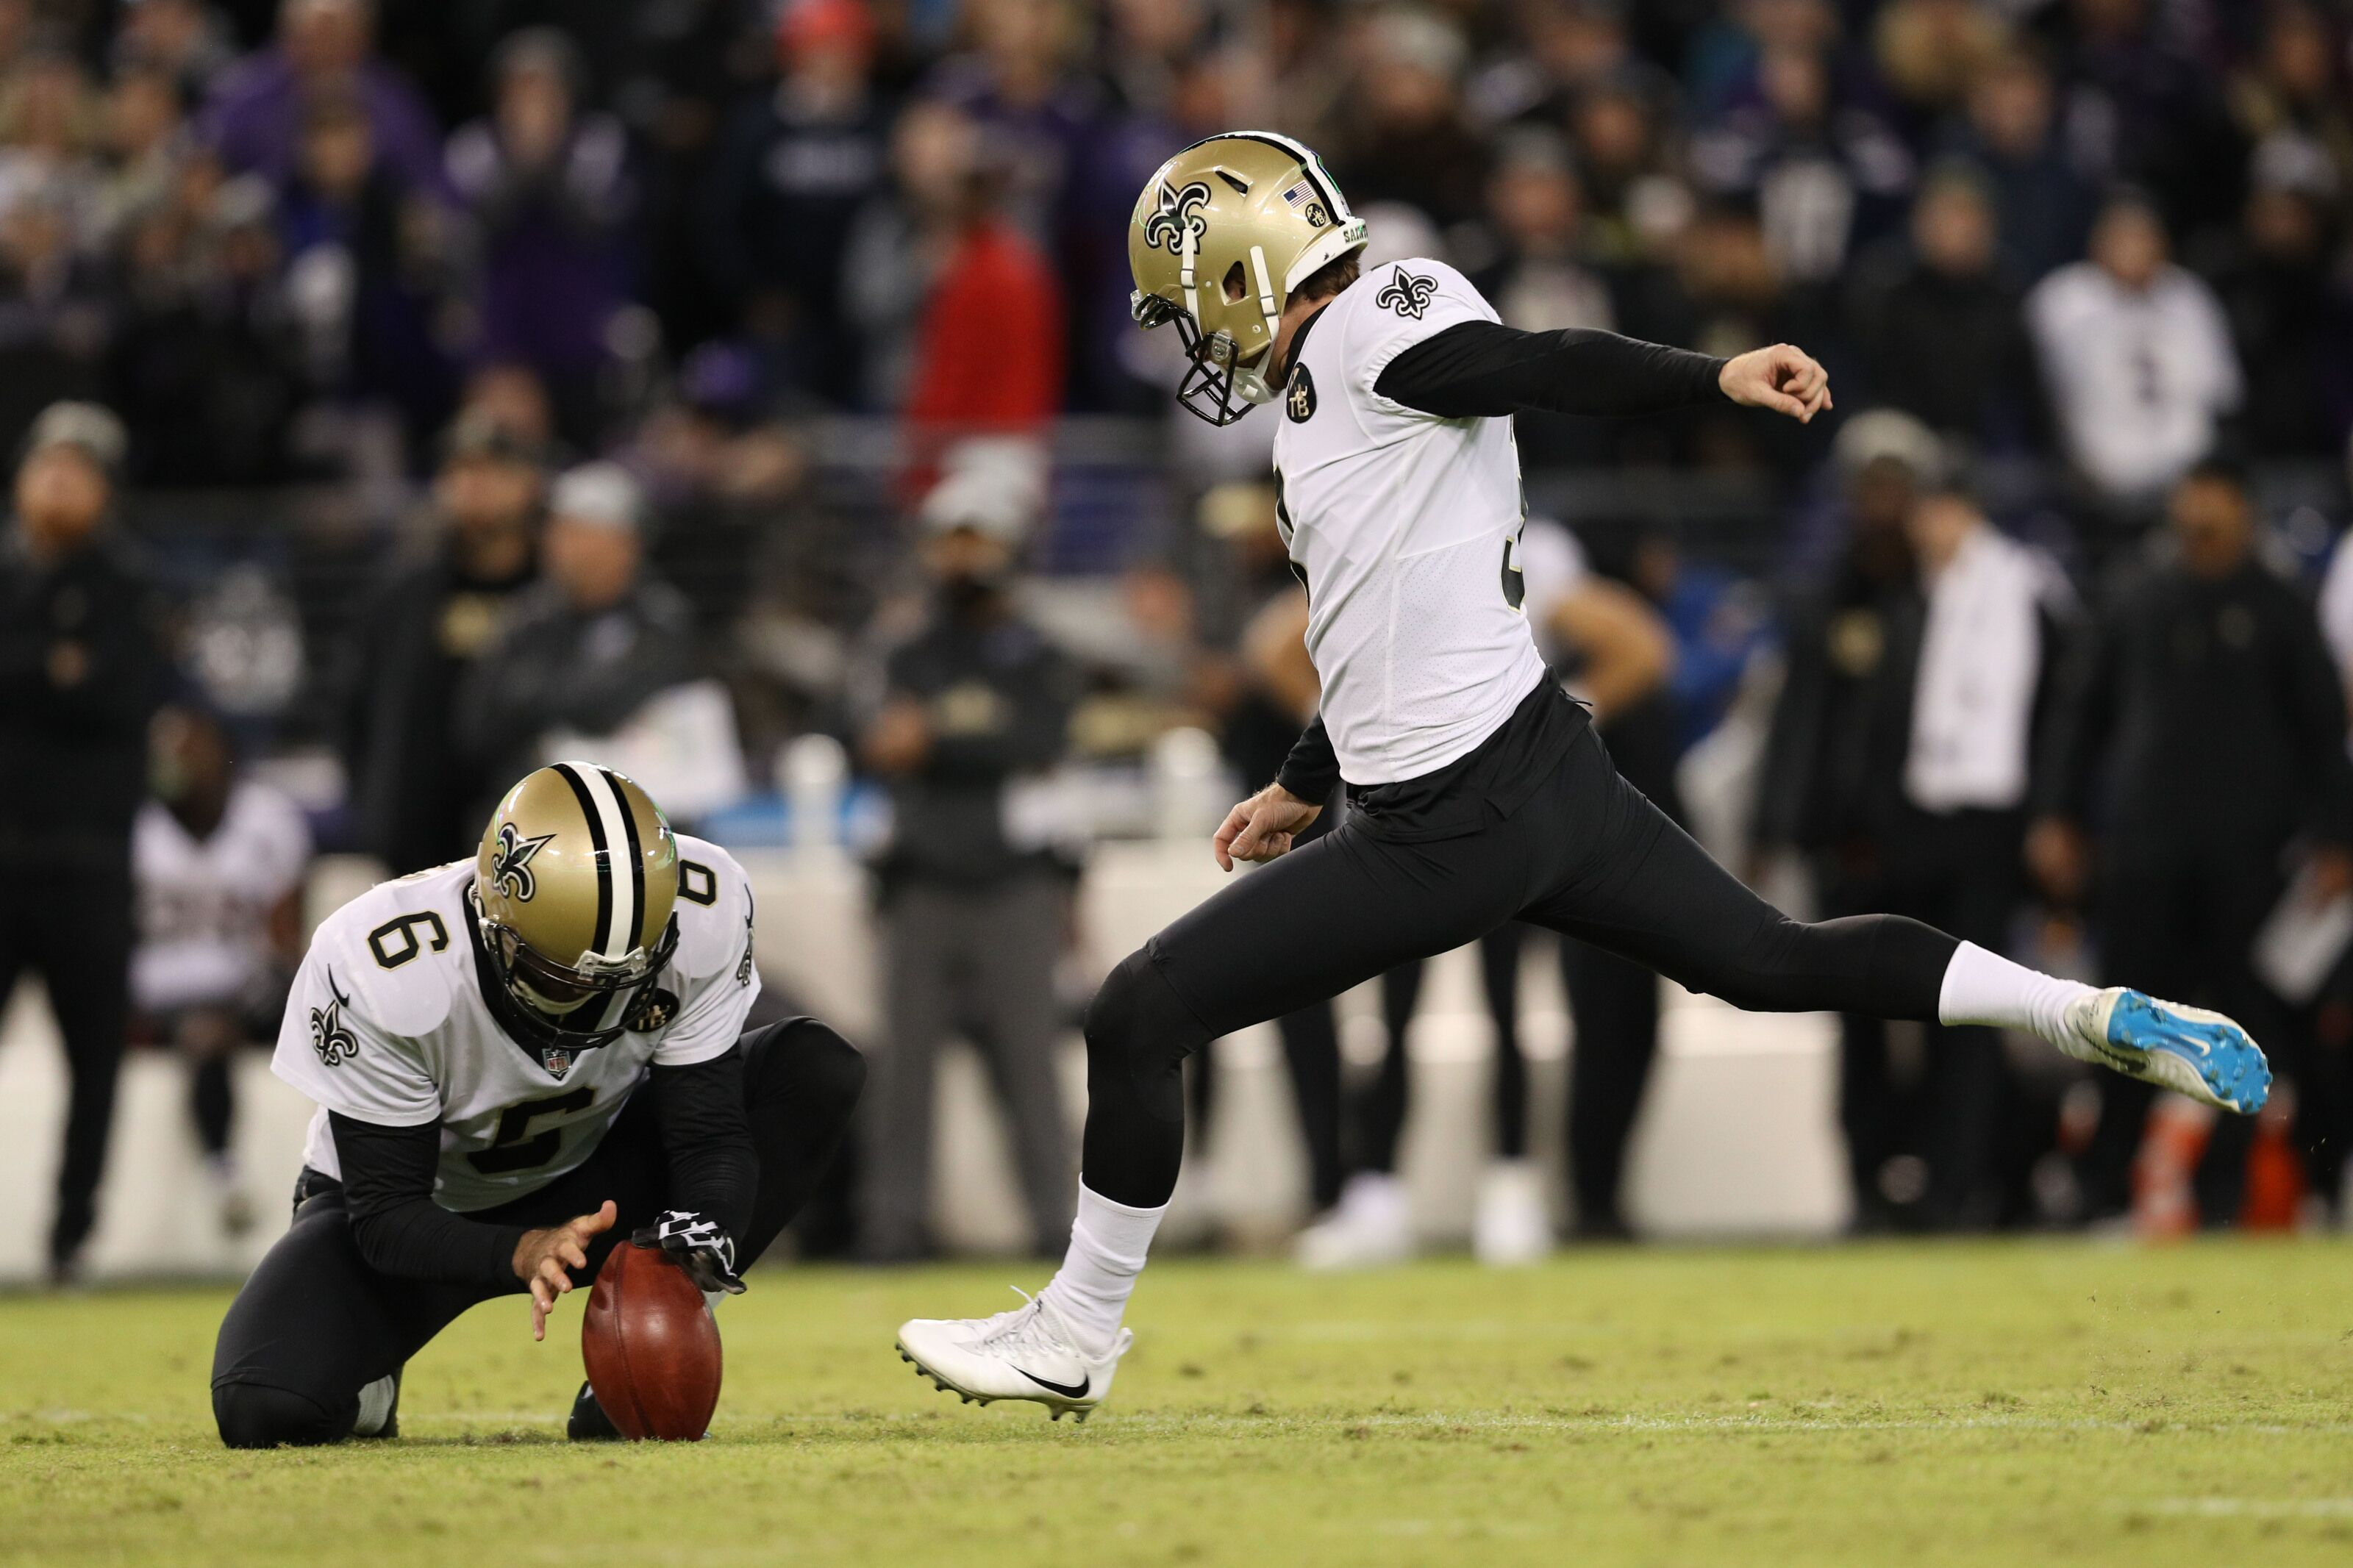 Saints  Let s give kicker Wil Lutz his moment in the sun 9e0eeb9b7